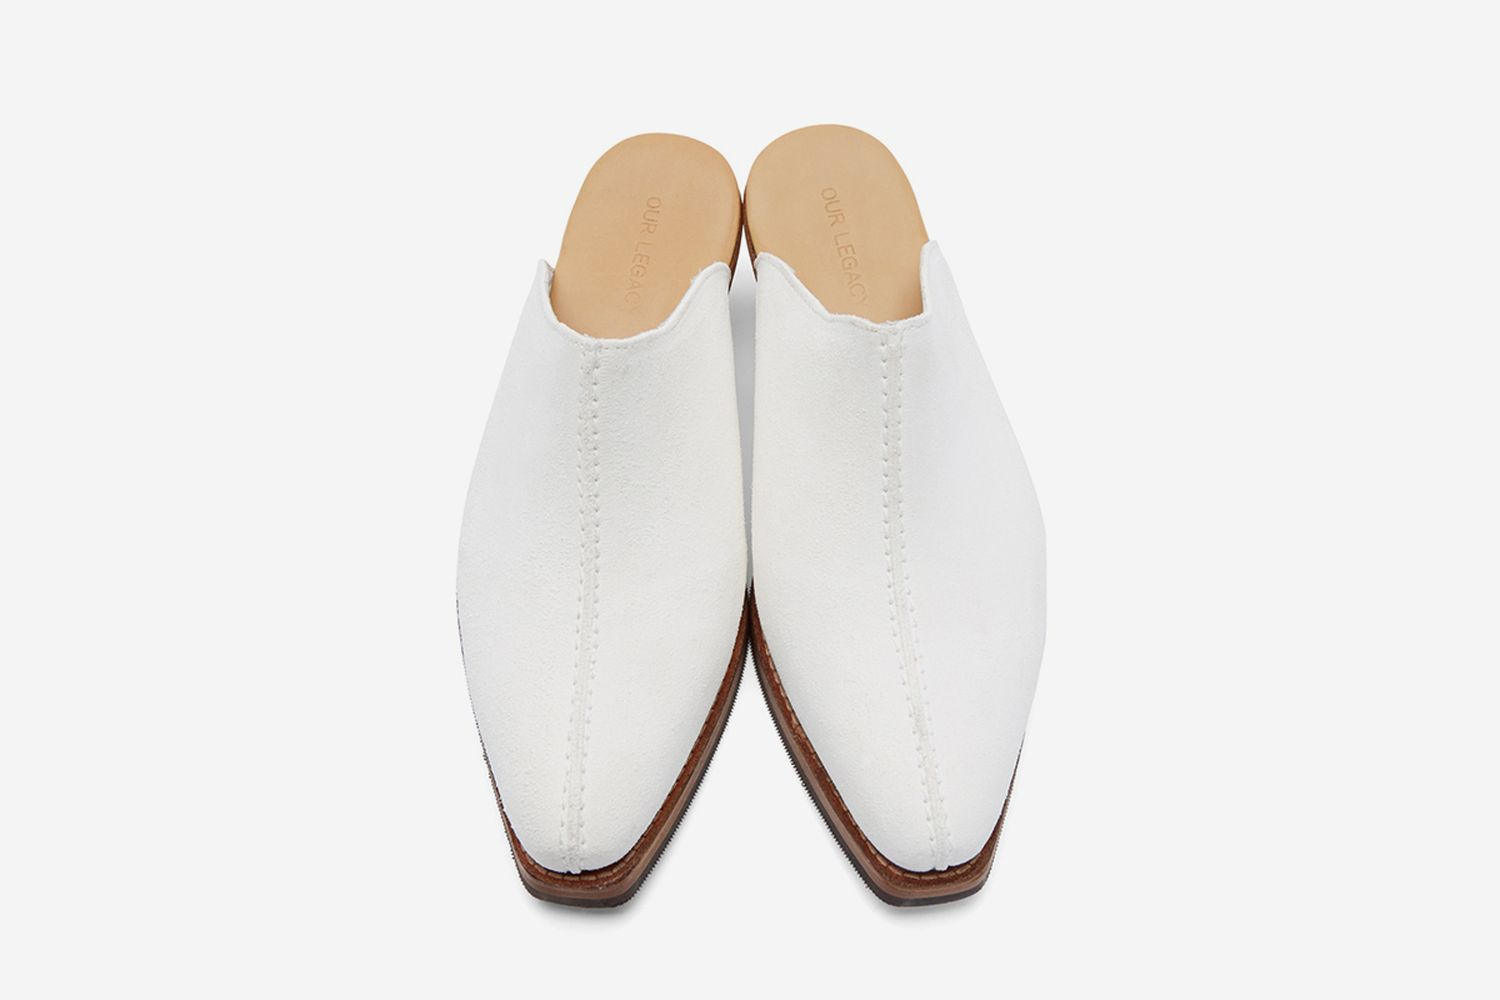 Mule Slip-On Loafers